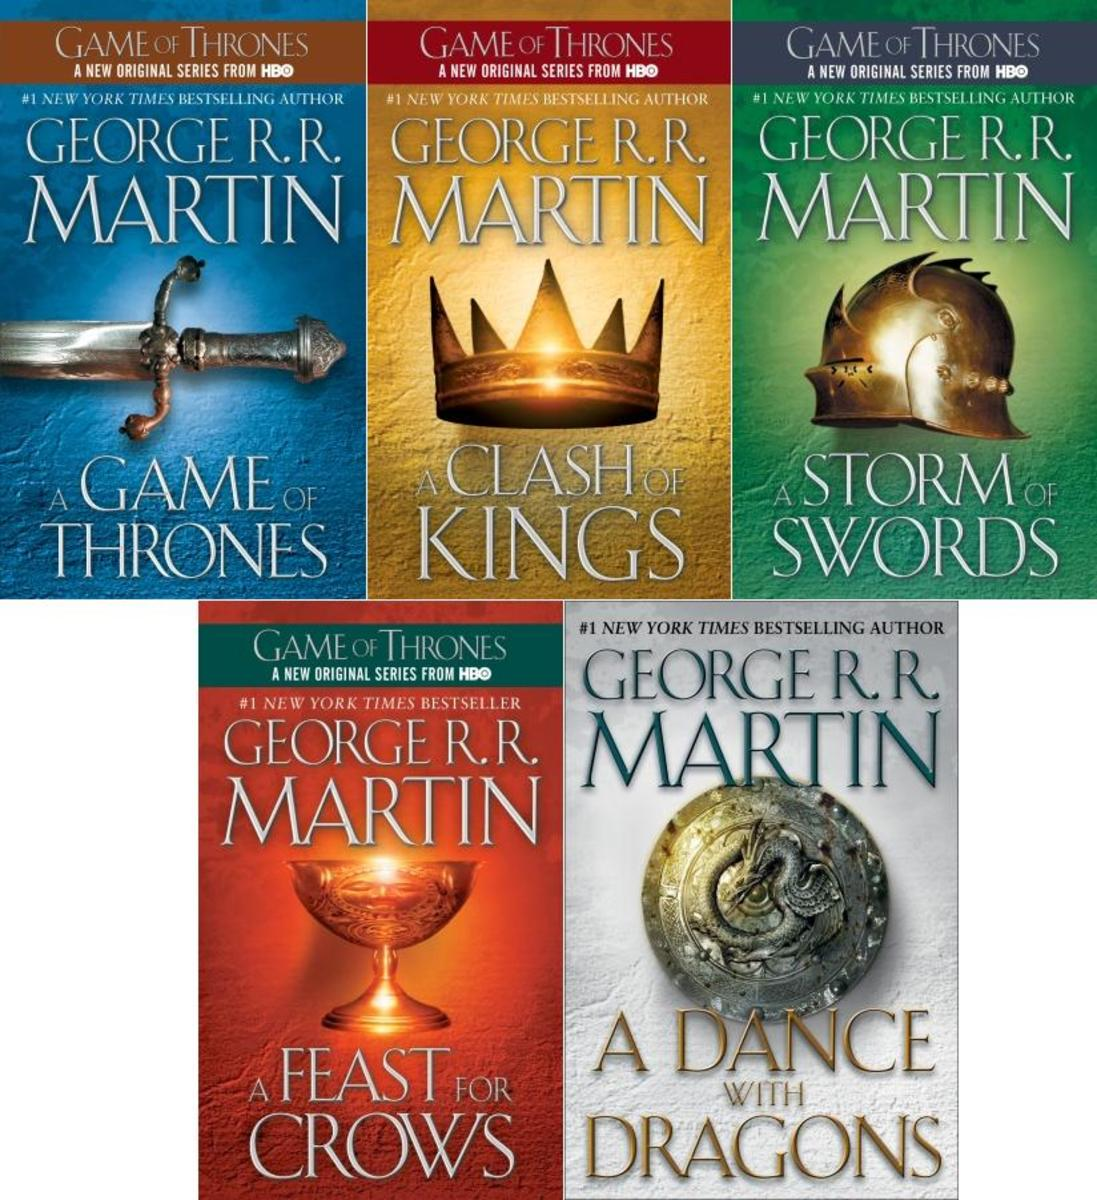 Review of George R. R. Martin's A Clash of Kings